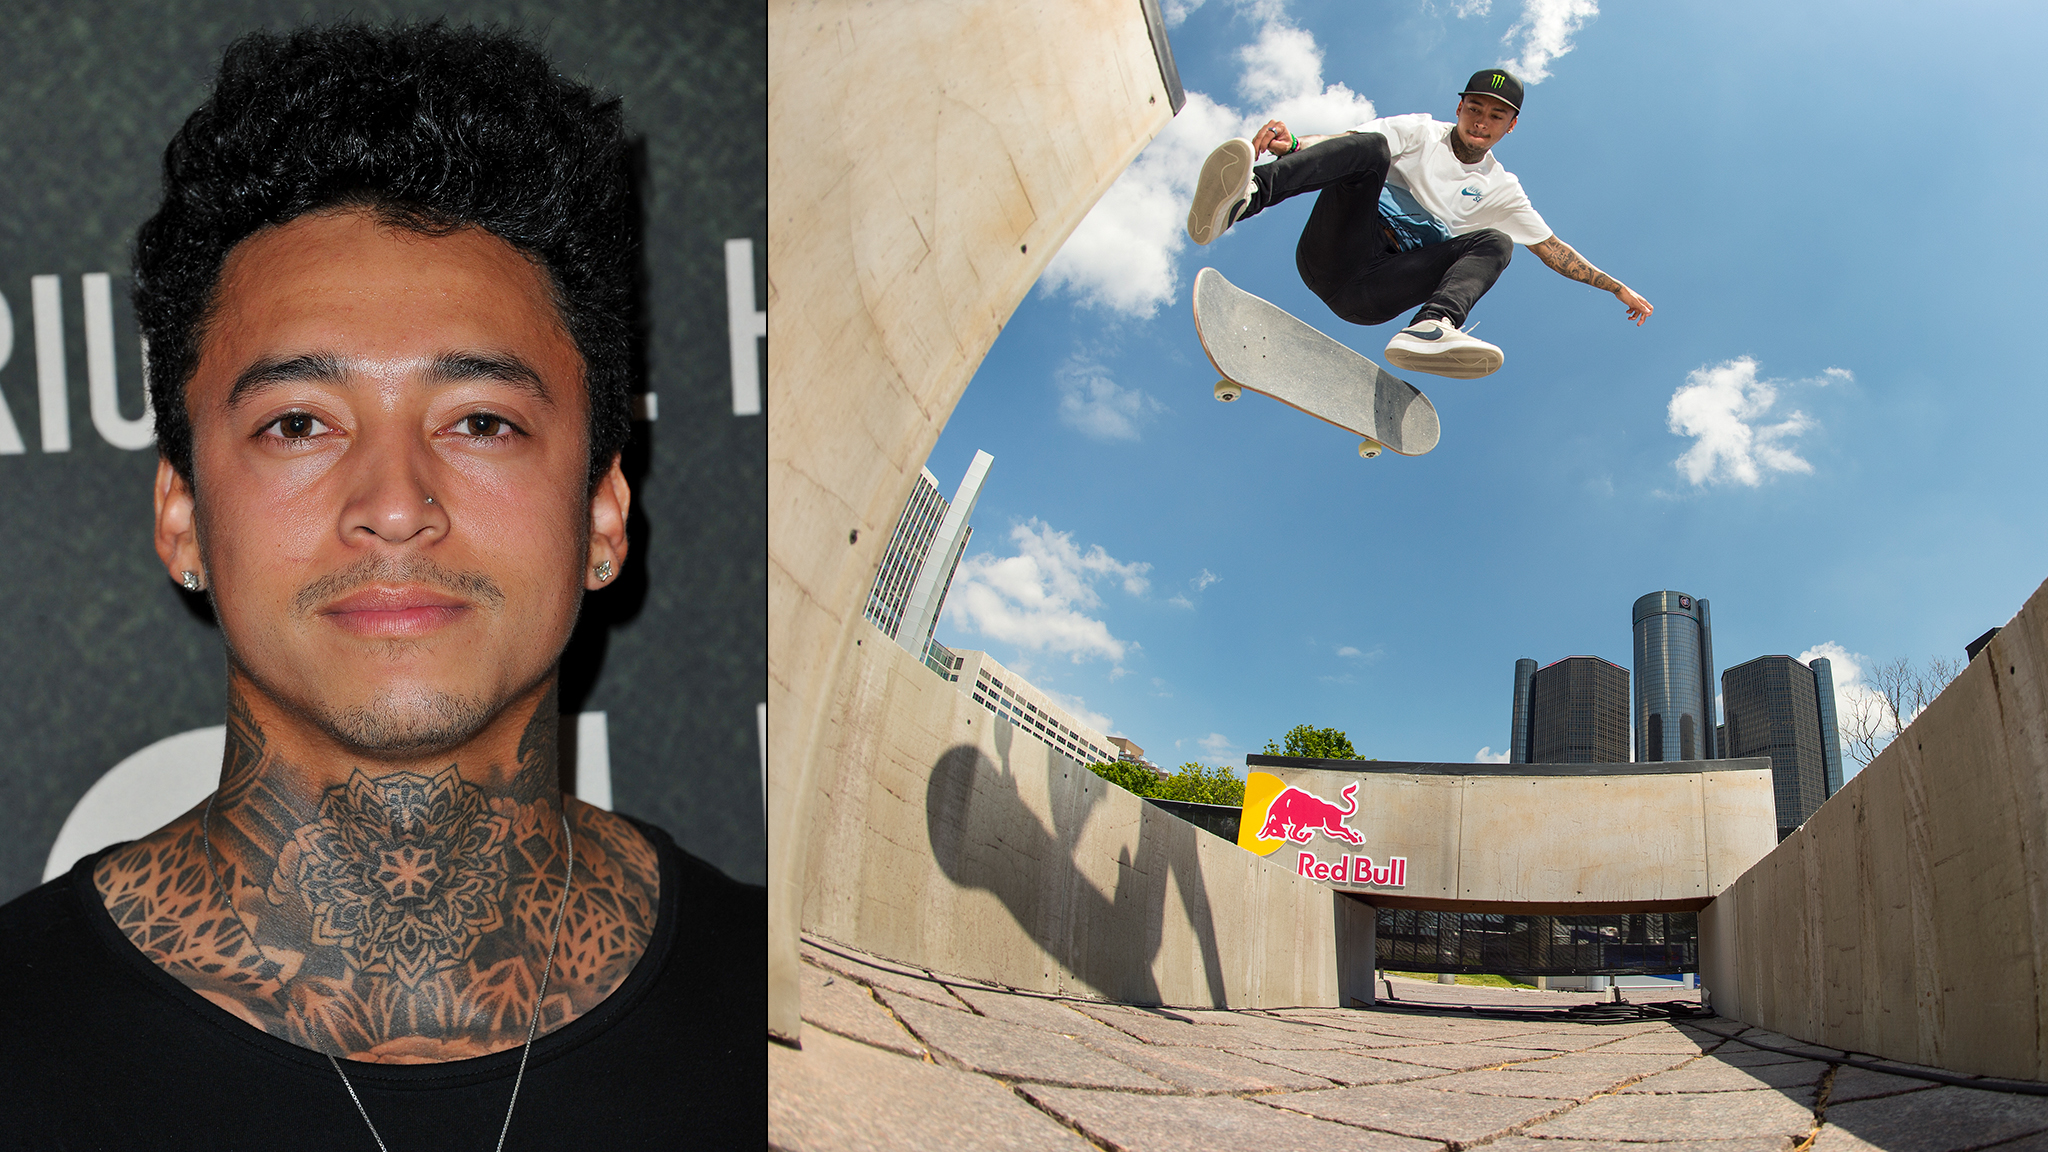 Nyjah Huston has 7 gold, 3 silver and 1 bronze from his 14 X Games Skateboard Street appearances. He also owns X Games Real Street gold for this banger-filled 2012 video part.